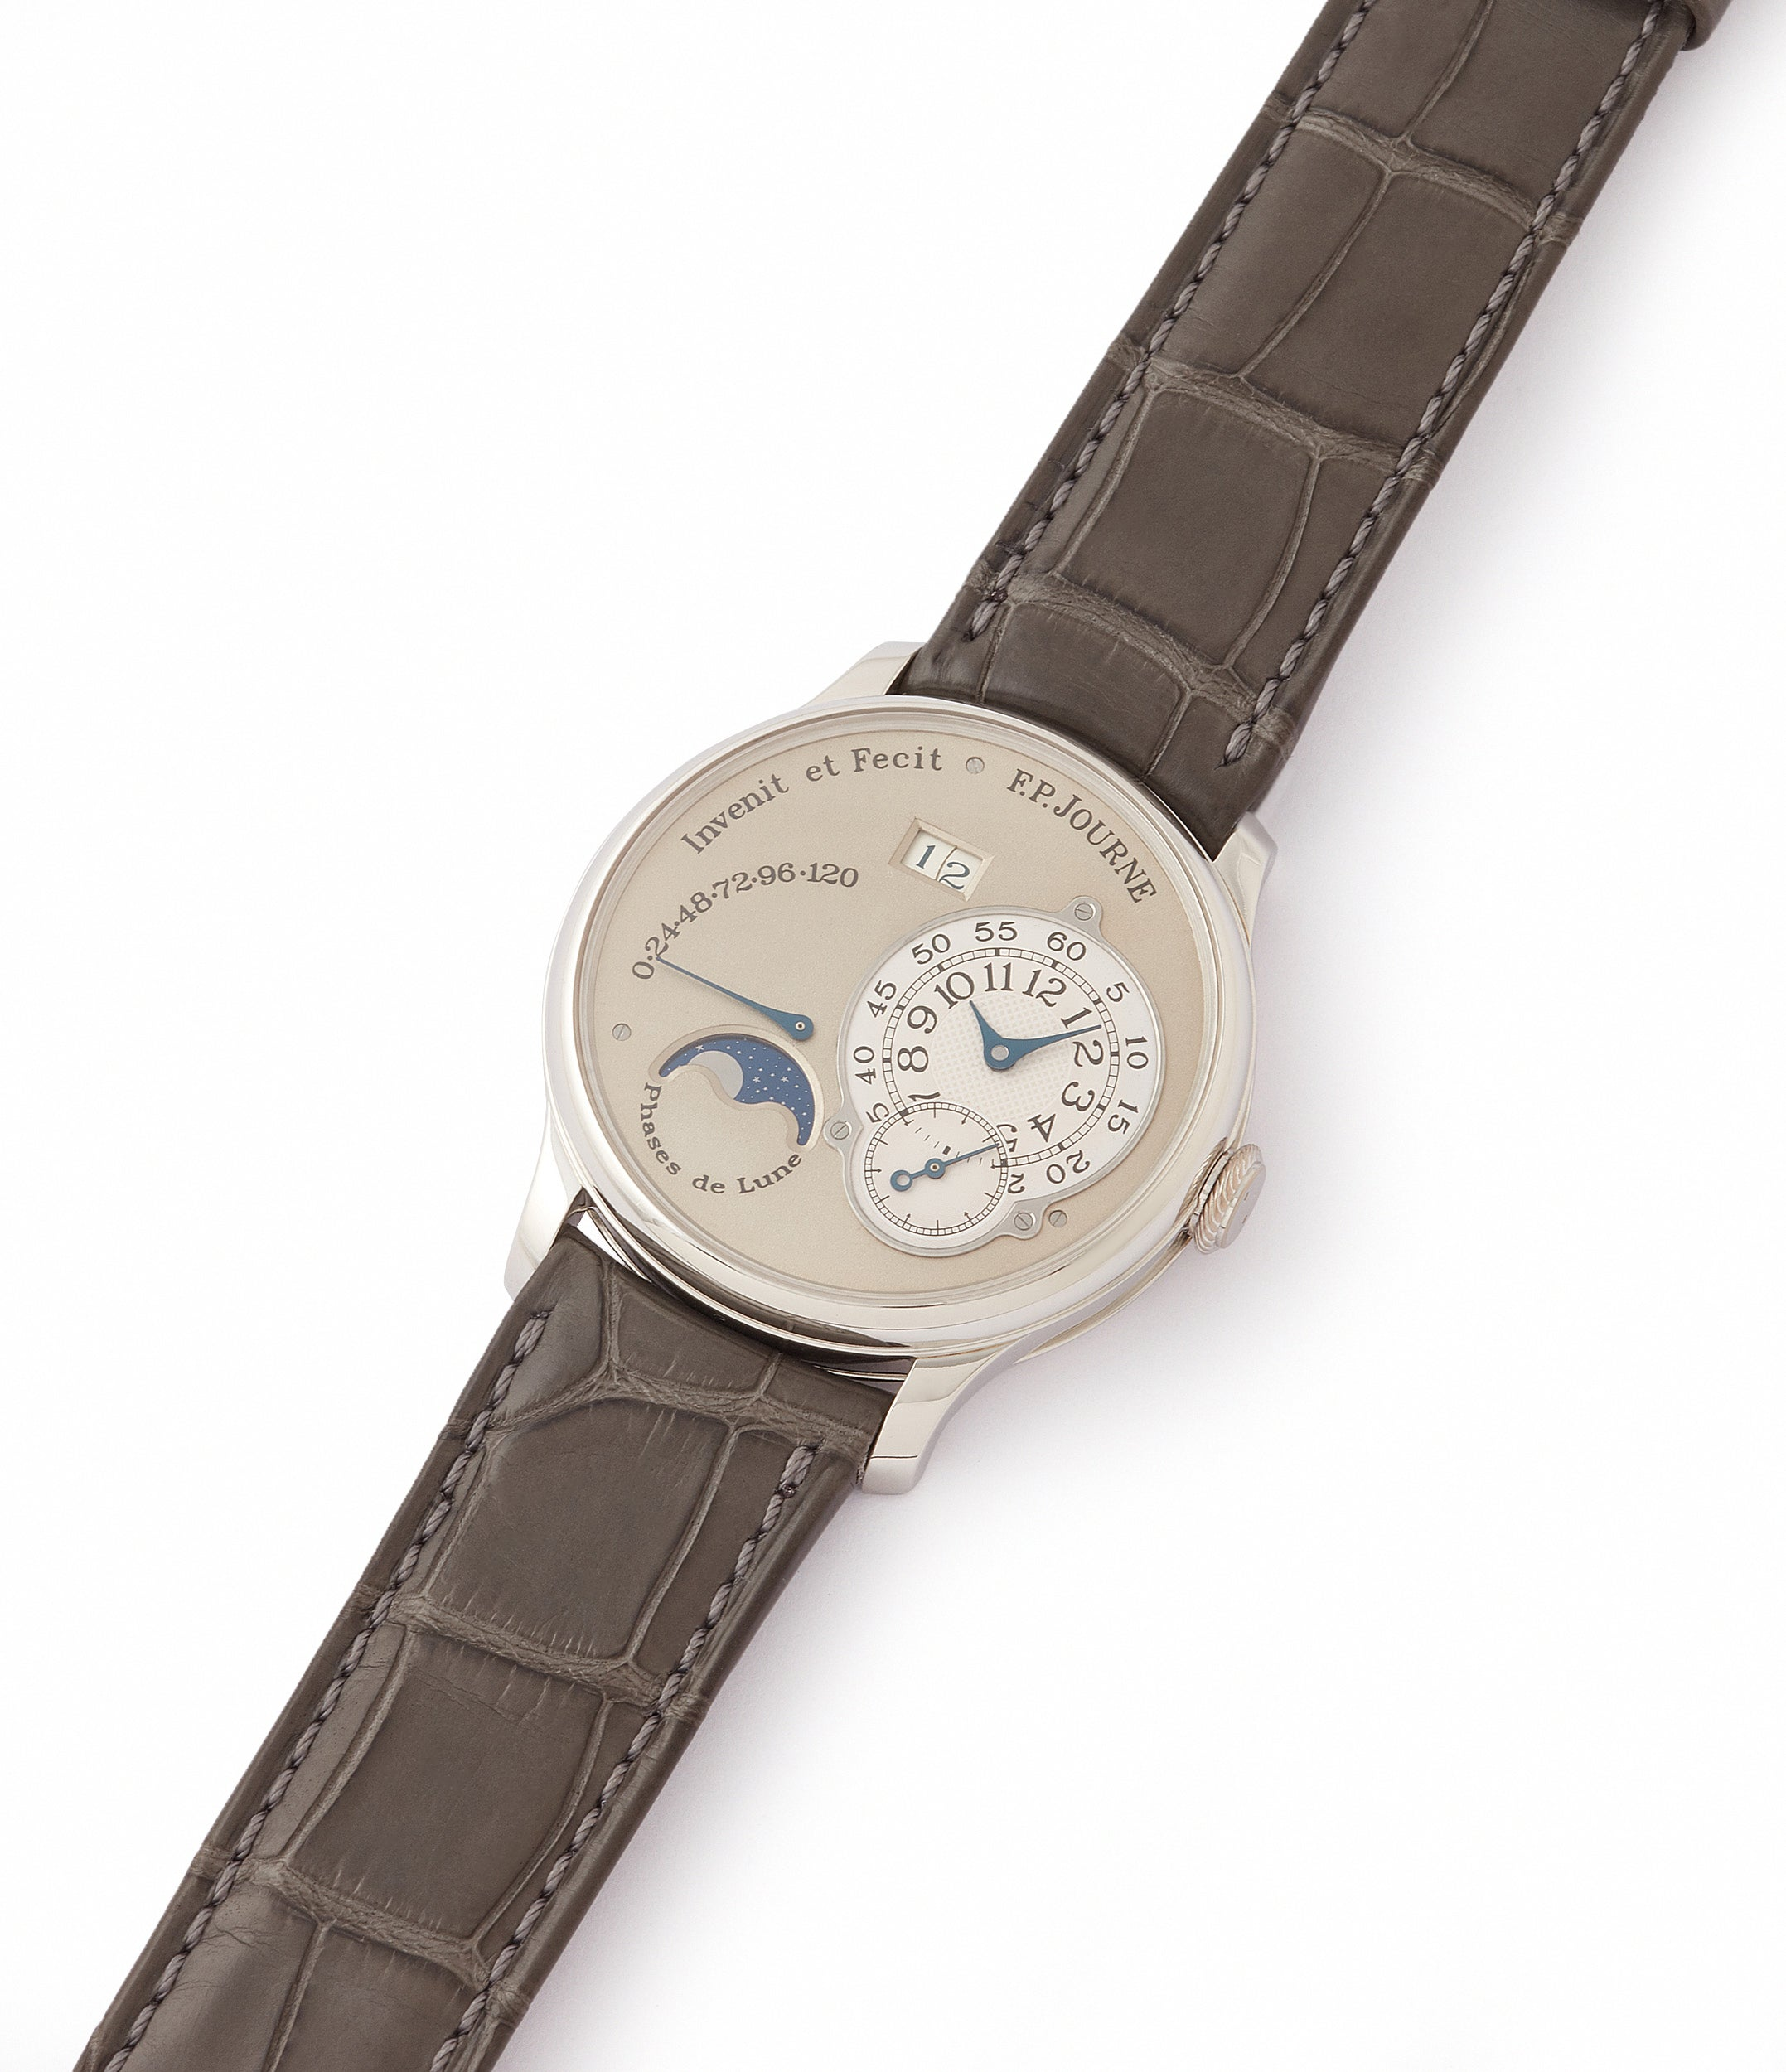 shop F. P. Journe Octa Lune 061-03L early brass movement platinum rare watch for sale online at A Collected Man London specialist of independent watchmakers